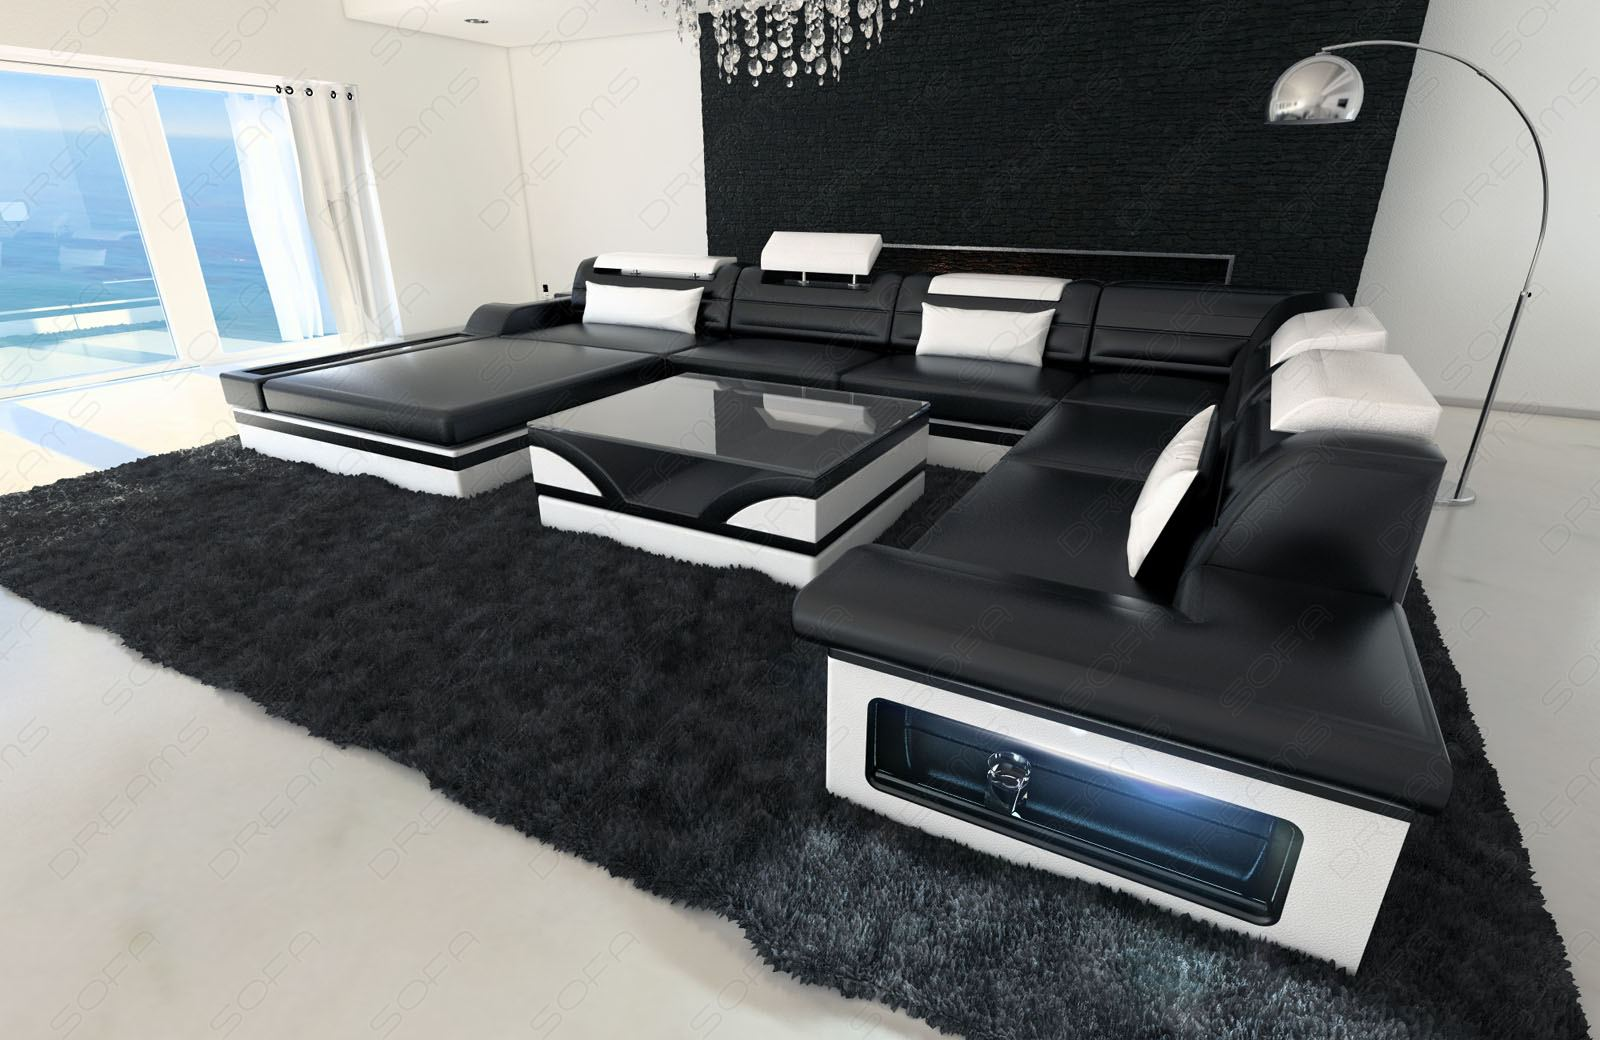 design sectional sofa mezzo xxl with led lights black white ebay. Black Bedroom Furniture Sets. Home Design Ideas